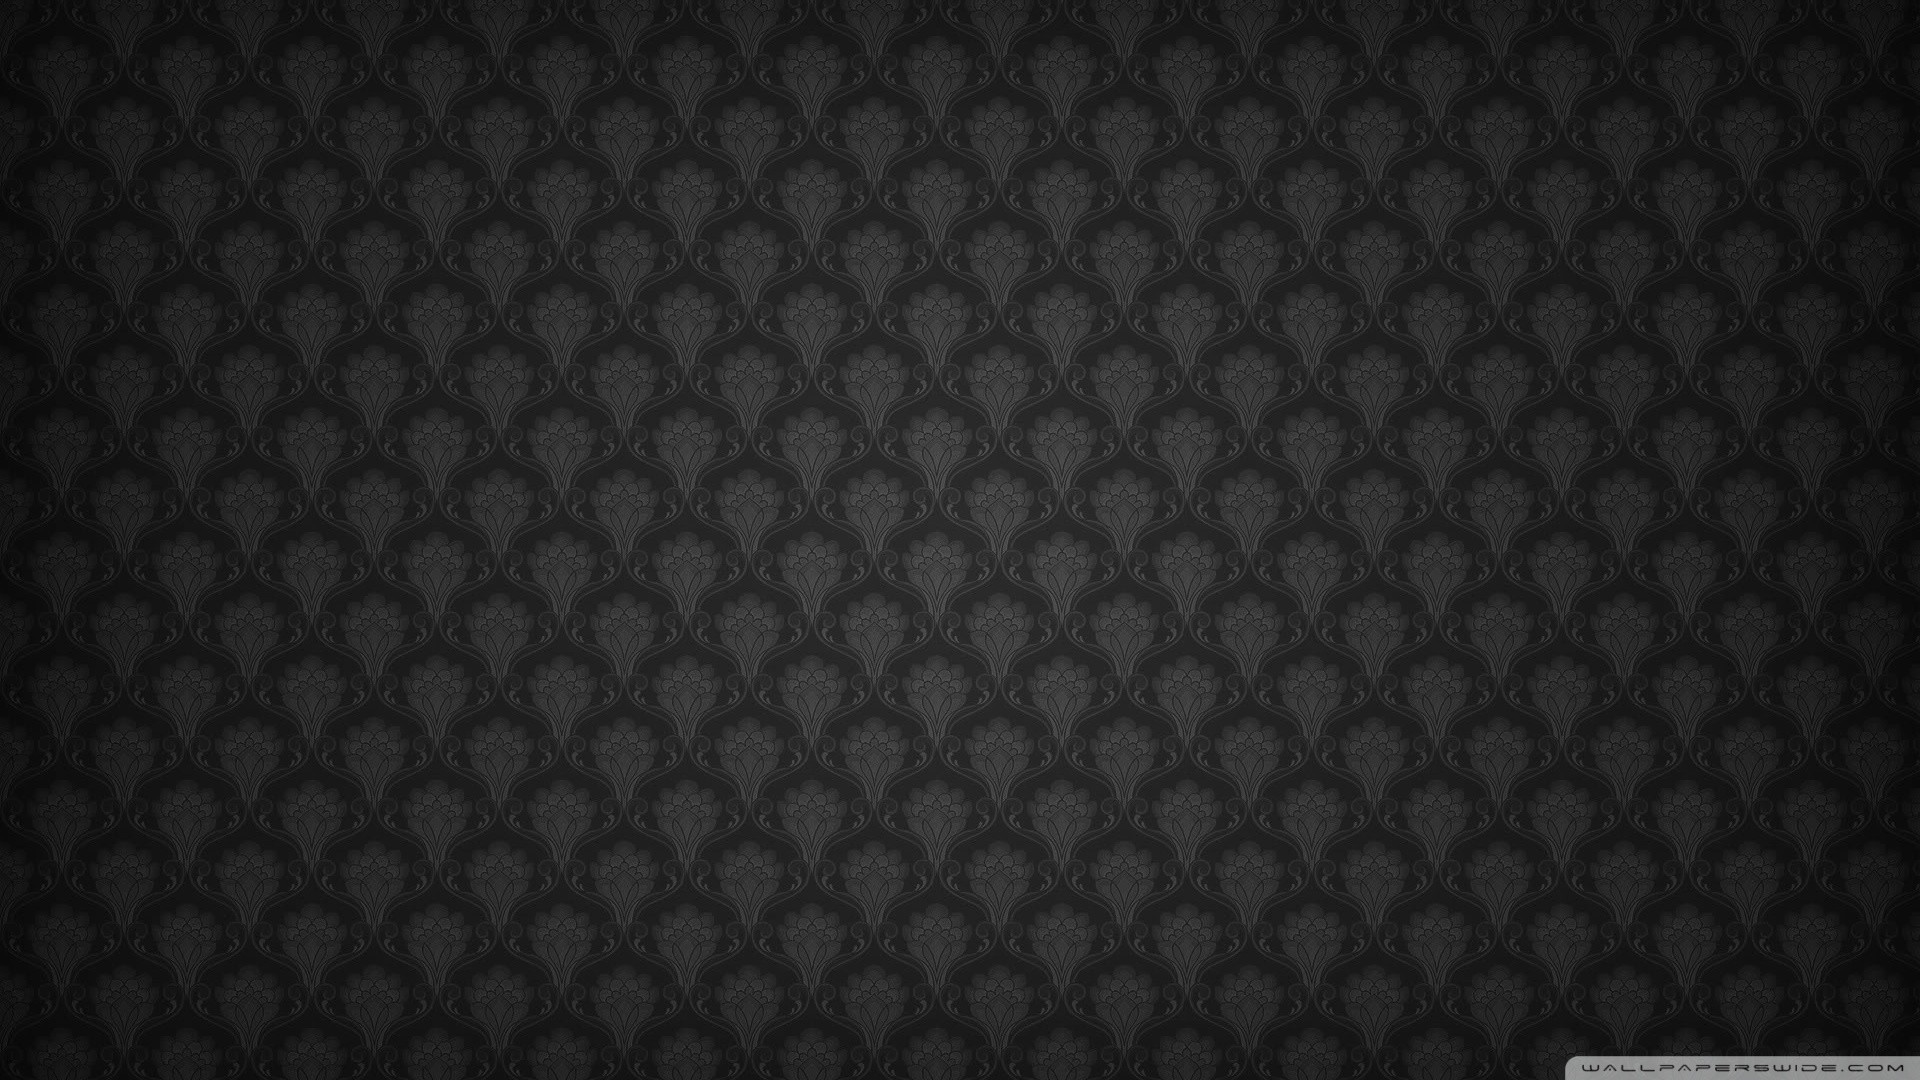 1920x1080 Patterned Wallpaper